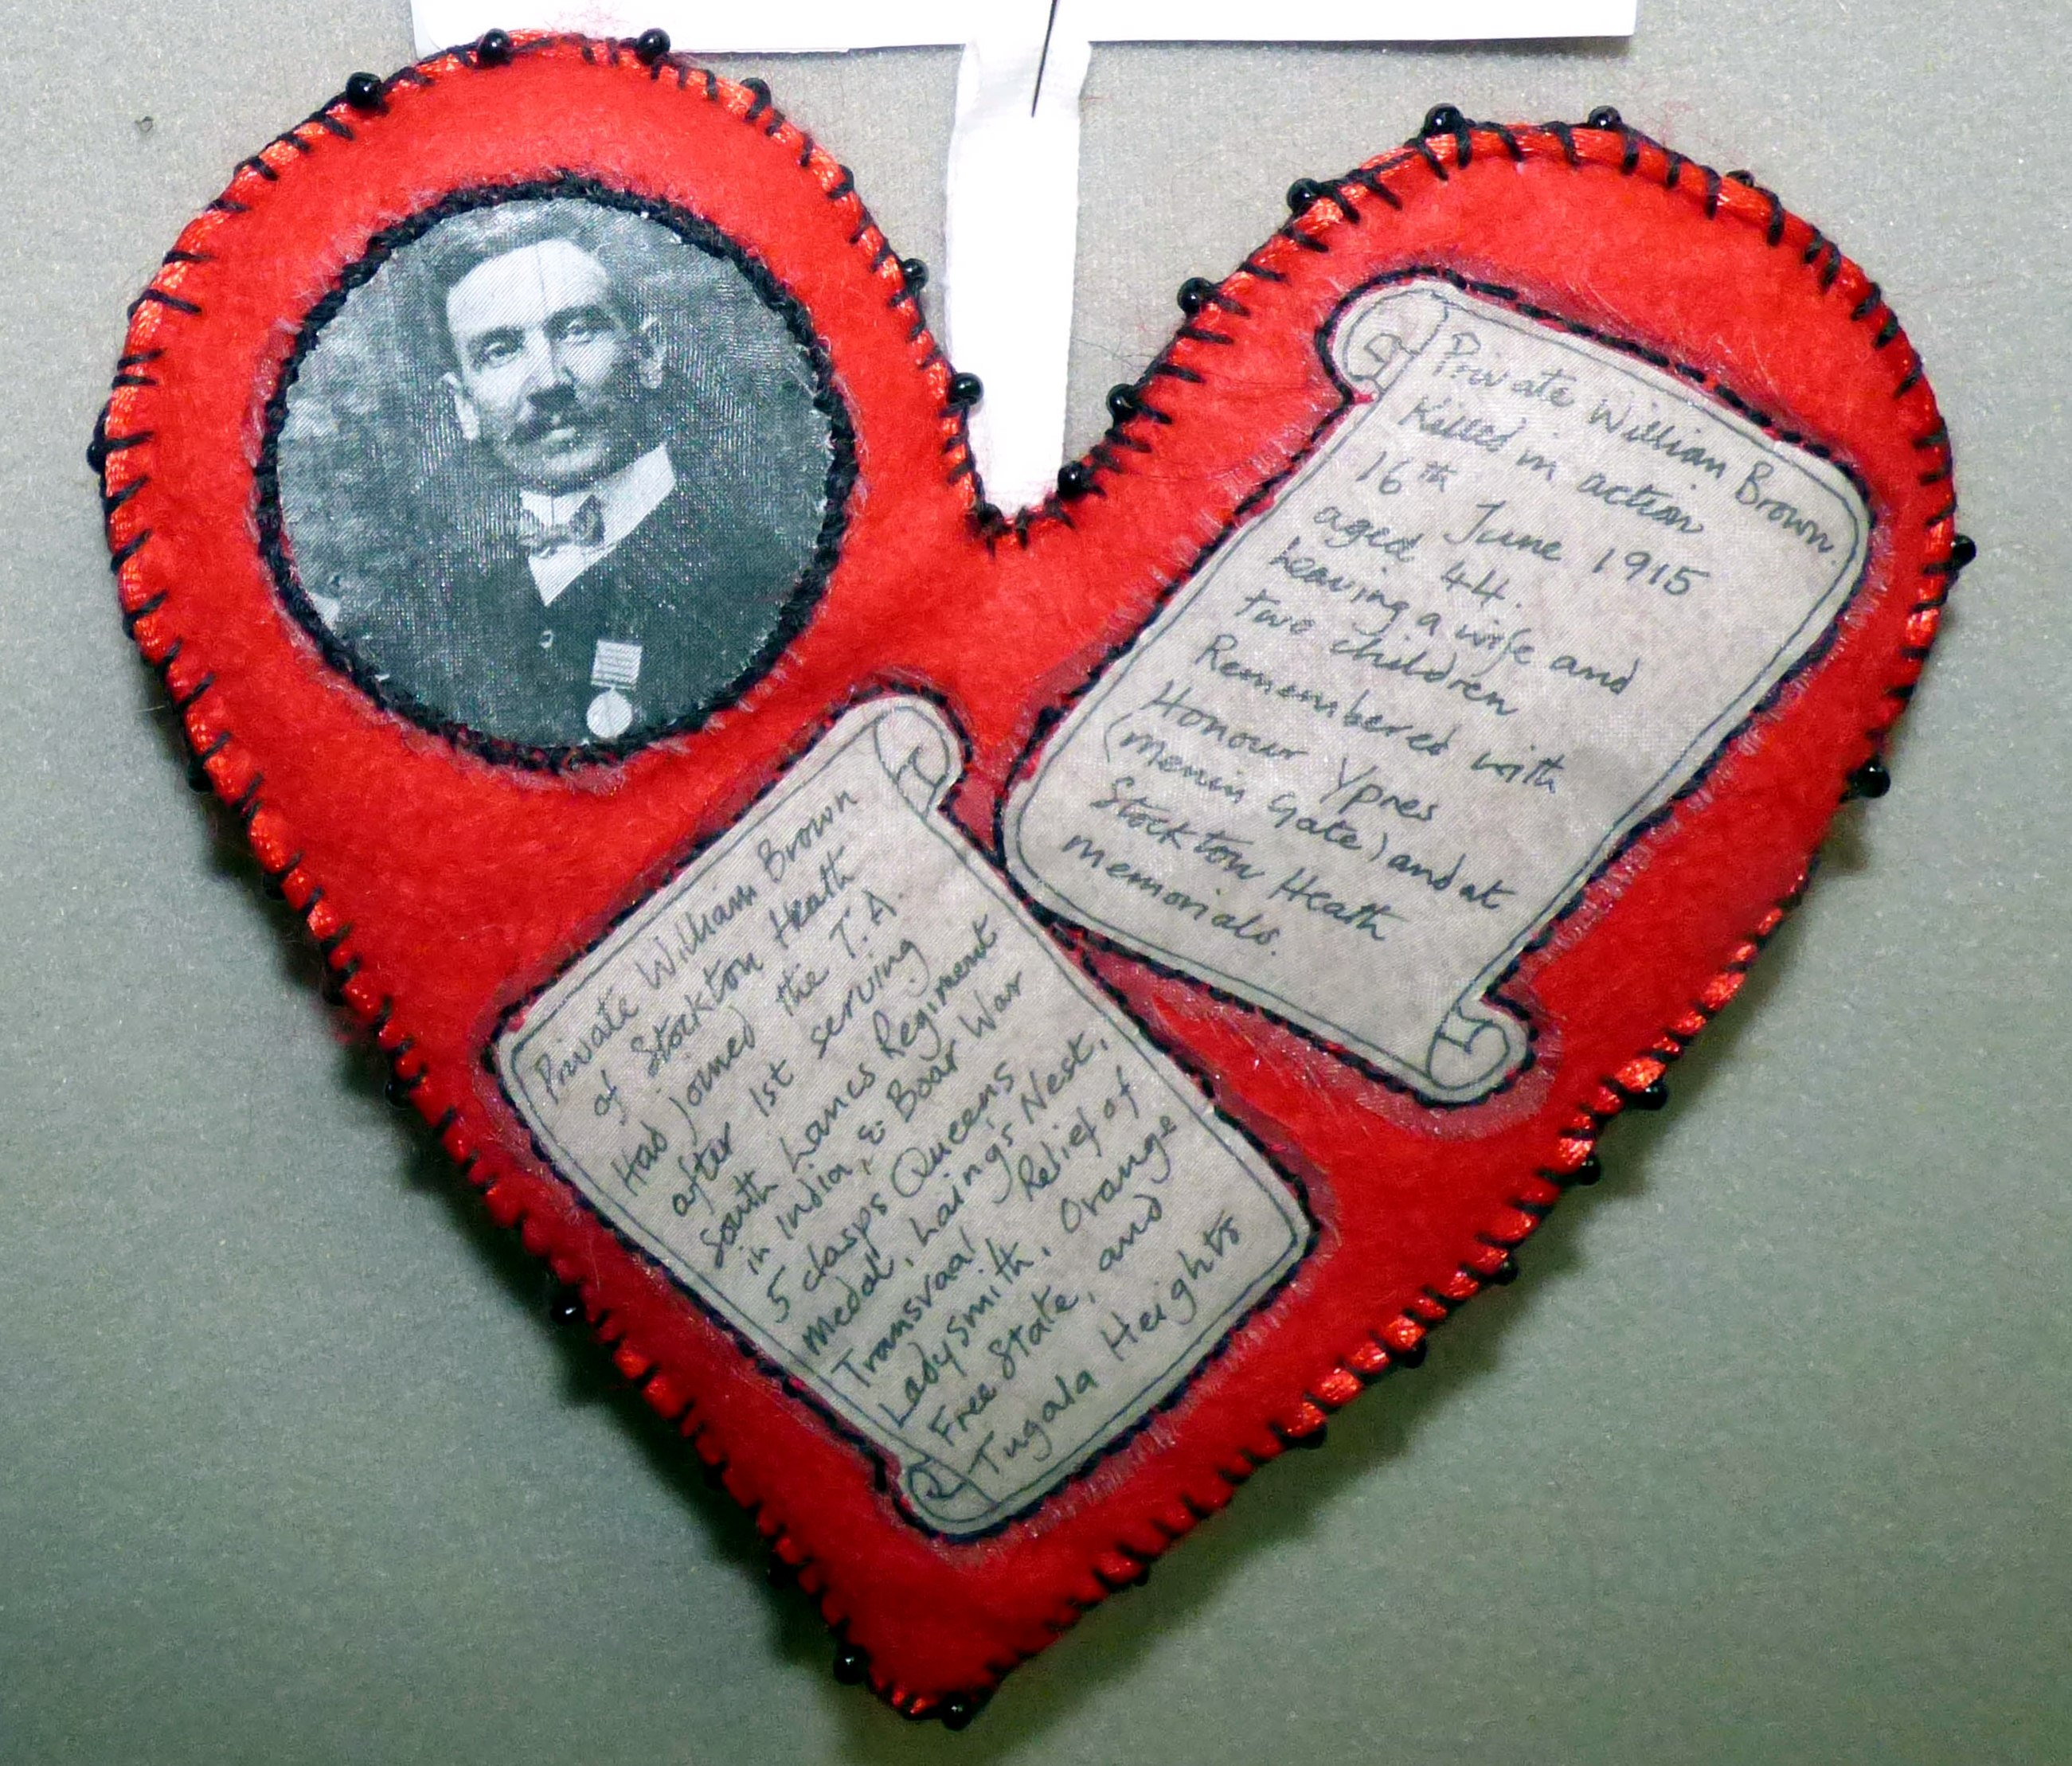 TO REMEMBER PRIVATE WILLIAM BROWN OF STOCKTON HEATH by Valerie Cockcroft, in memory of older soldiers, 100 Hearts exhibition, Liverpool Cathedral, Sept 2018